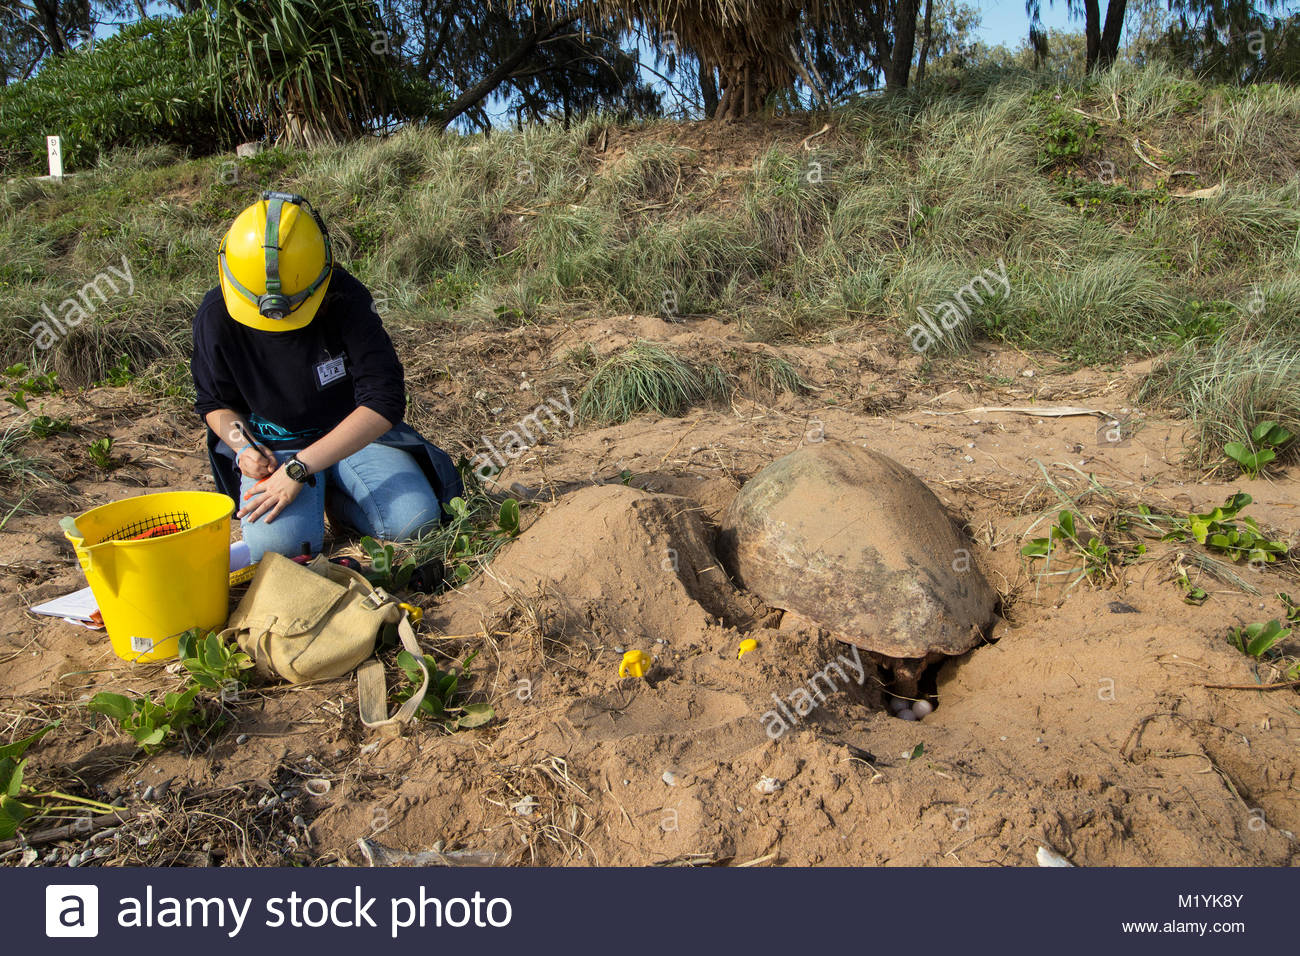 A researcher recording data about the nest of a Loggerhead Turtle at Mon Repos Conservation Park in Australia. - Stock Image